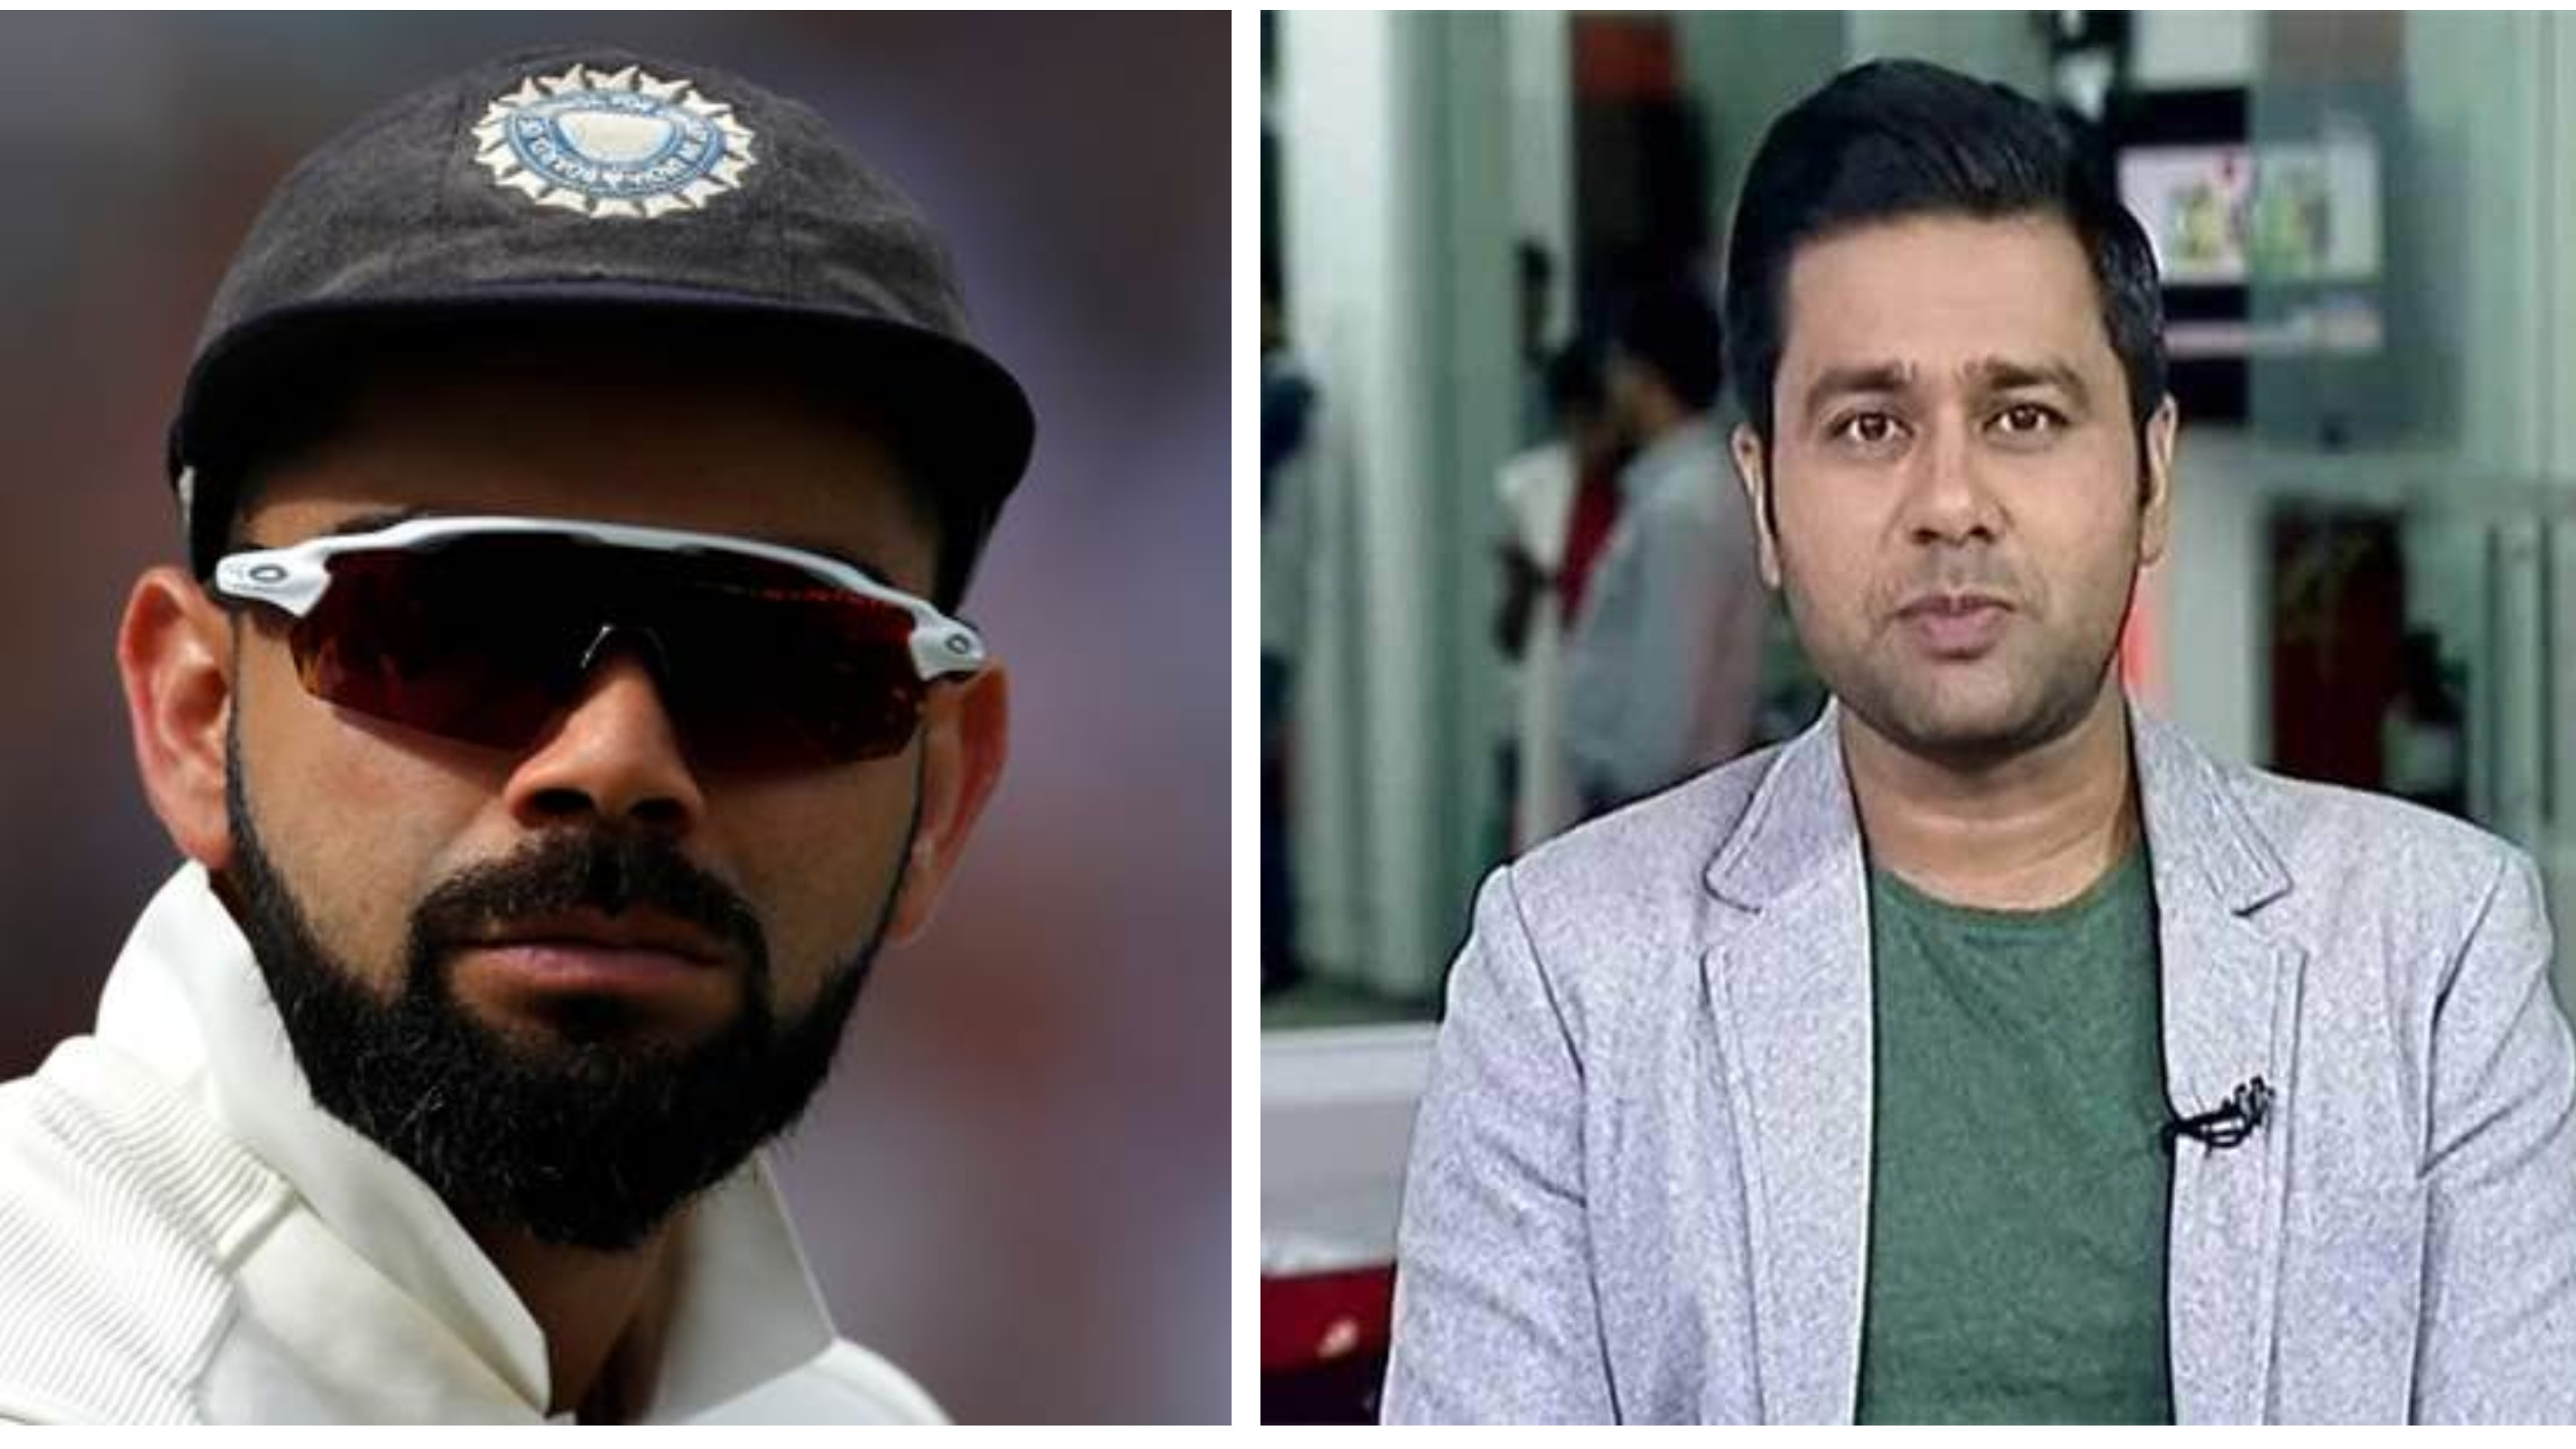 ENG vs IND 2018: Aakash Chopra questions Virat Kohli's selections and tactics